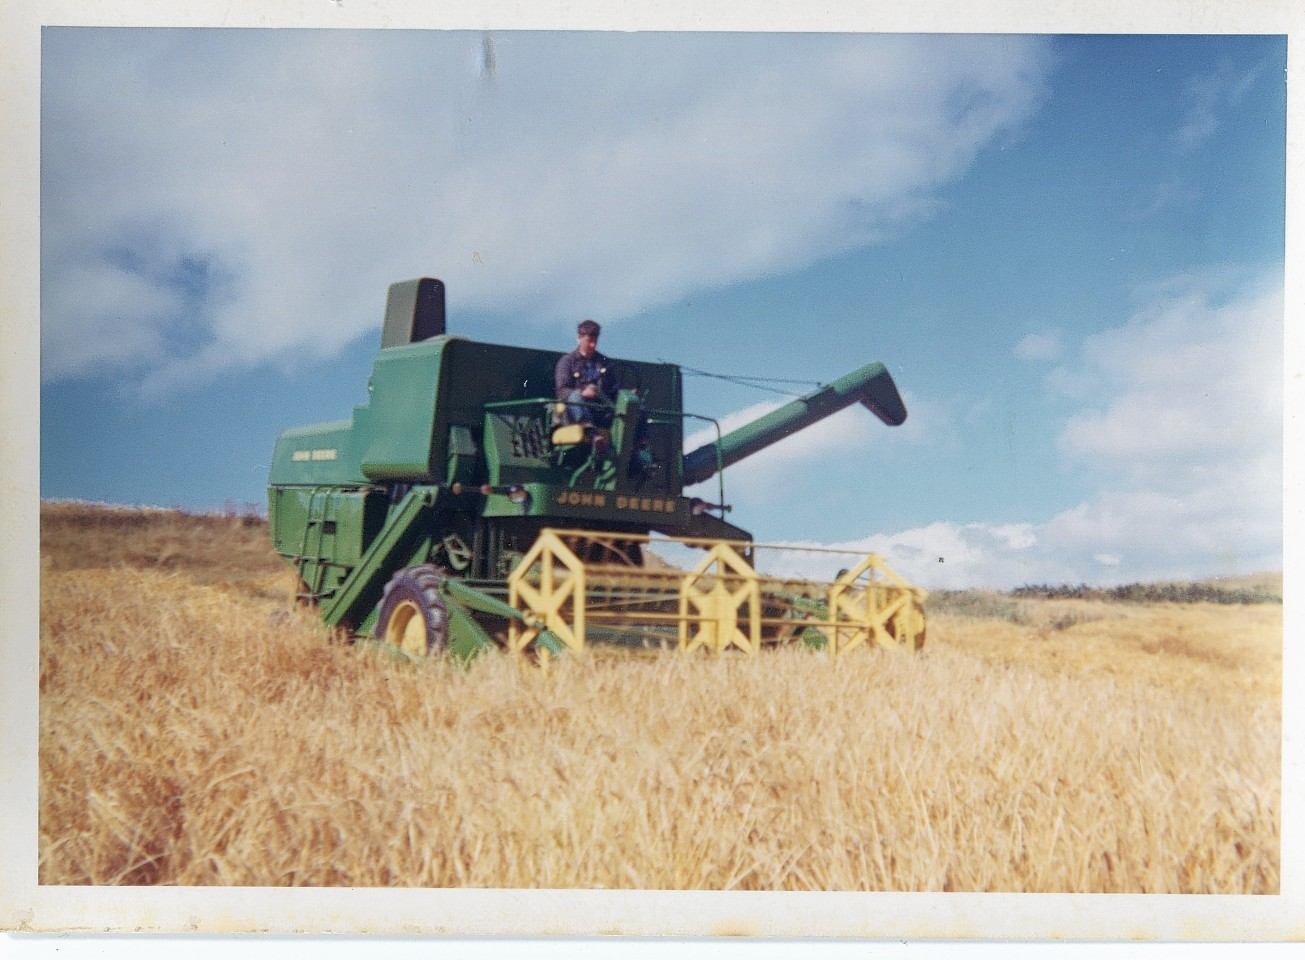 A John Deere 530 combine at work in the 1960s